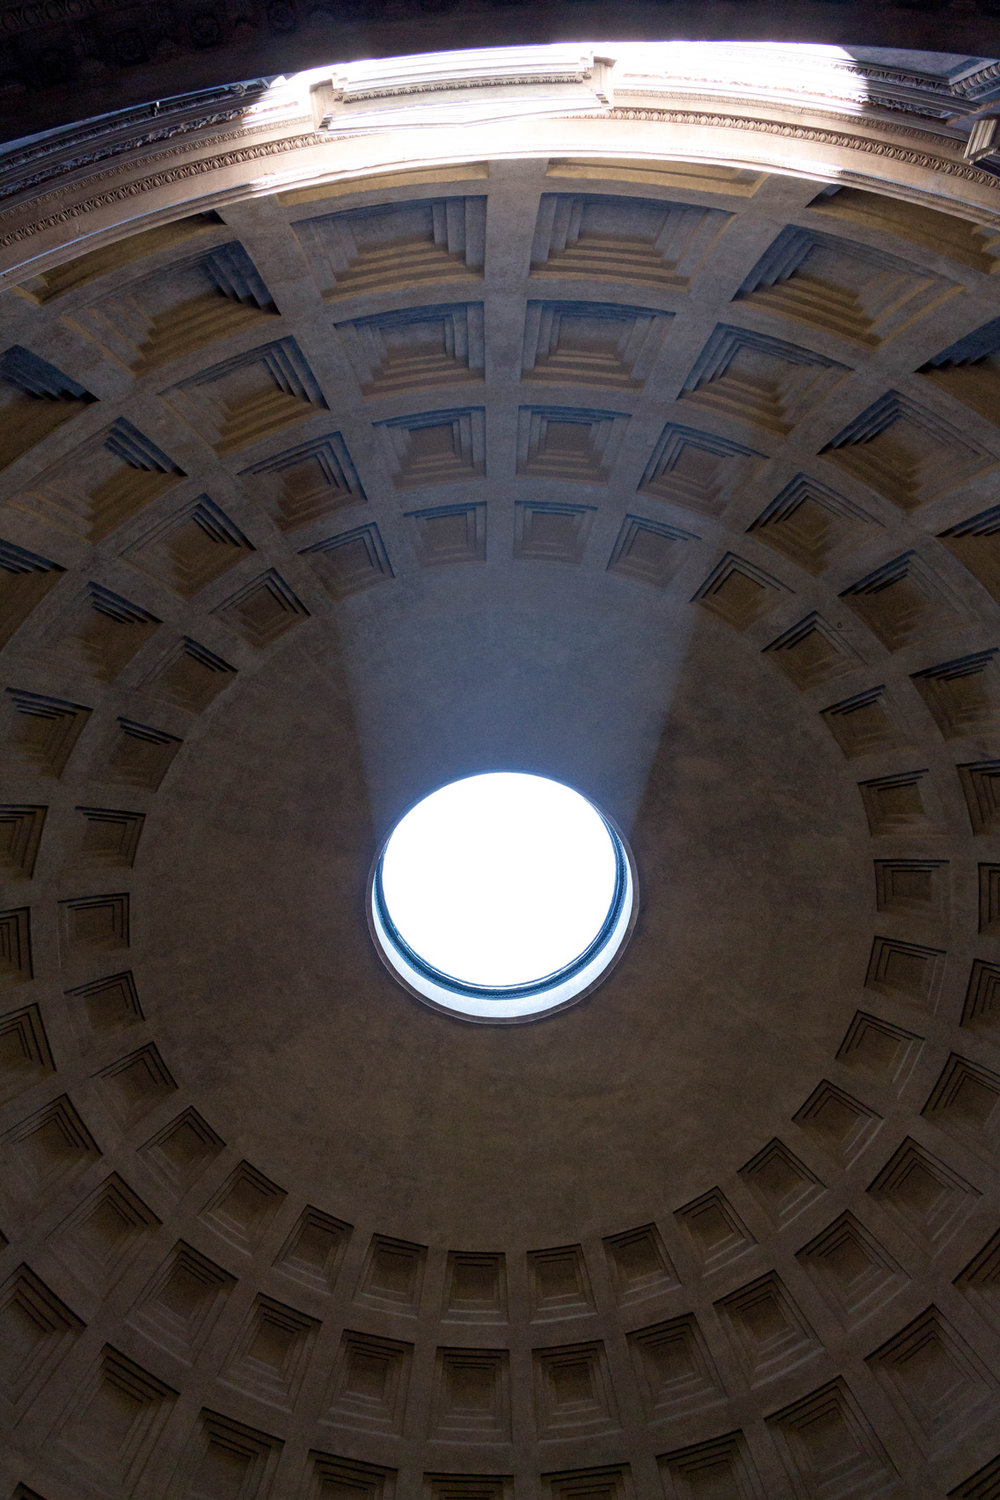 Dome of the Pantheon, Rome